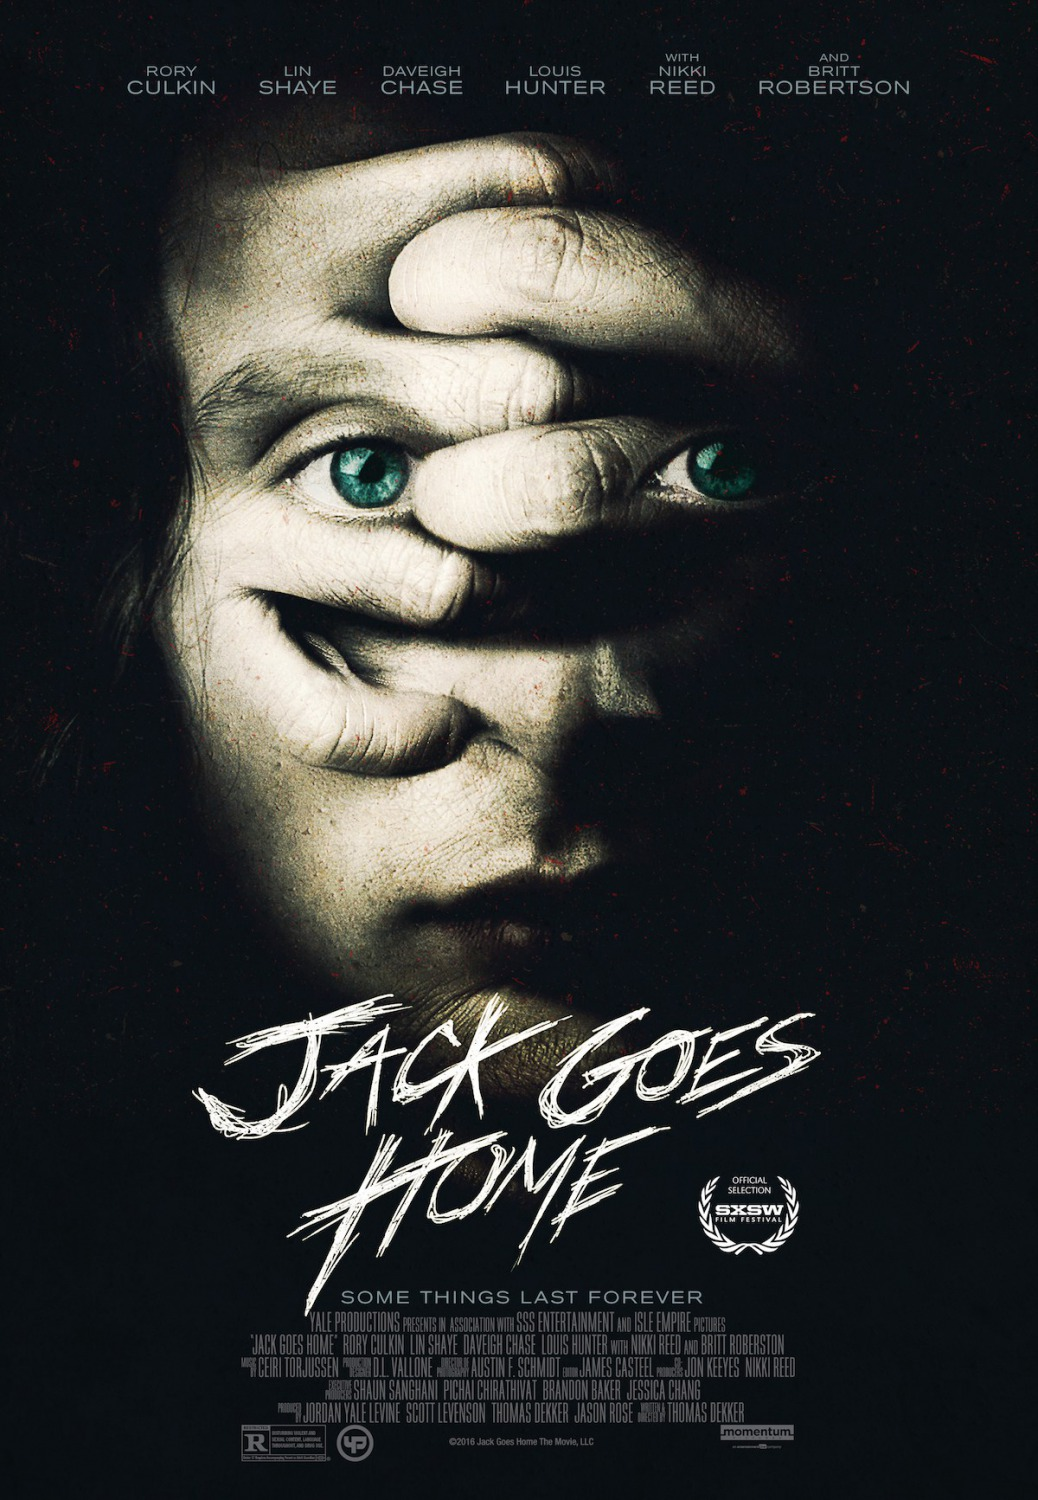 jack_goes_home_xlg.jpg